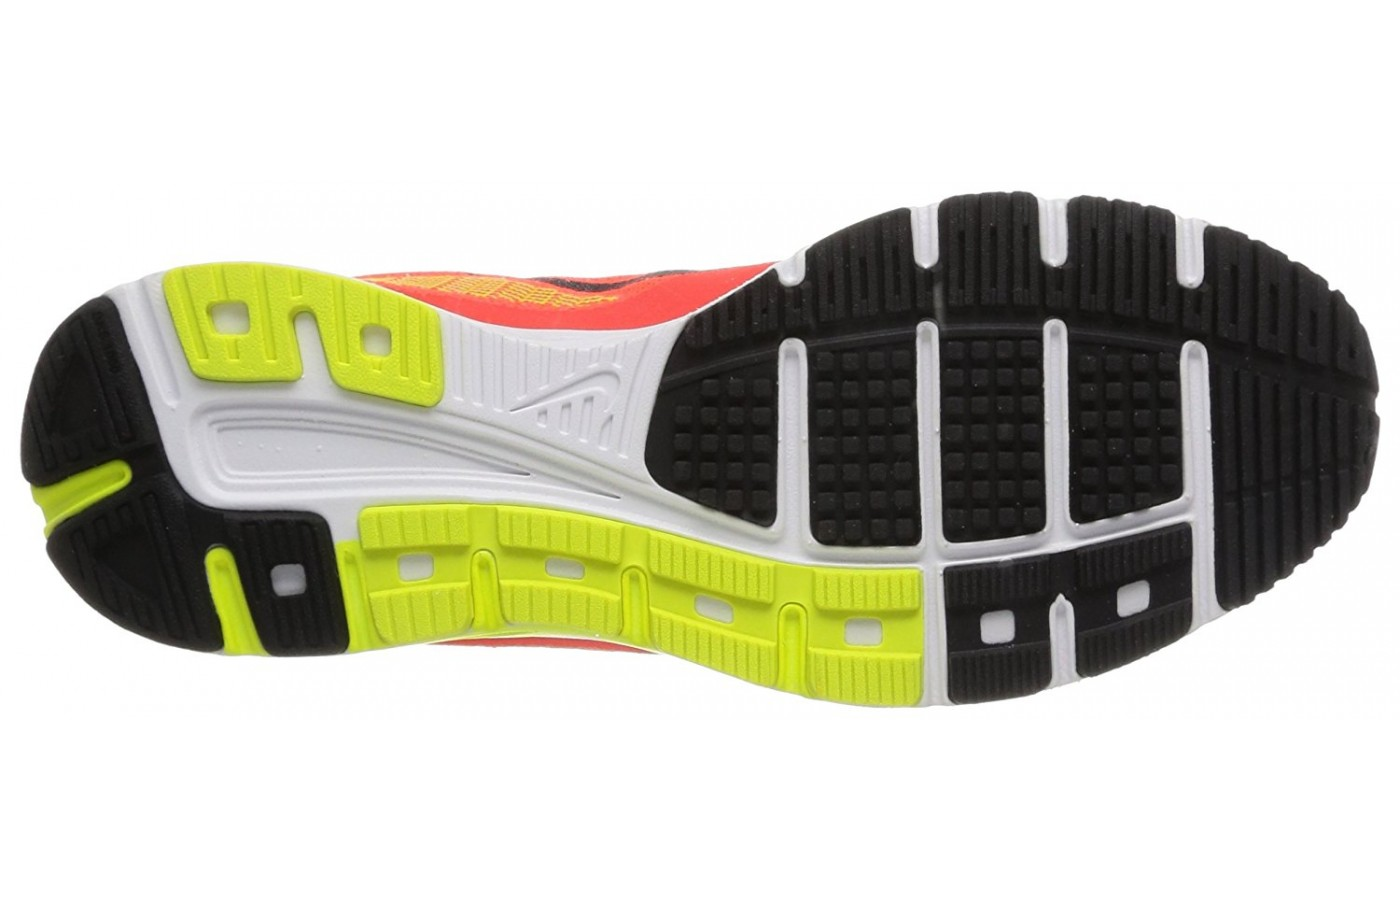 Carbon Rubber Outsole Superior Traction and Durability